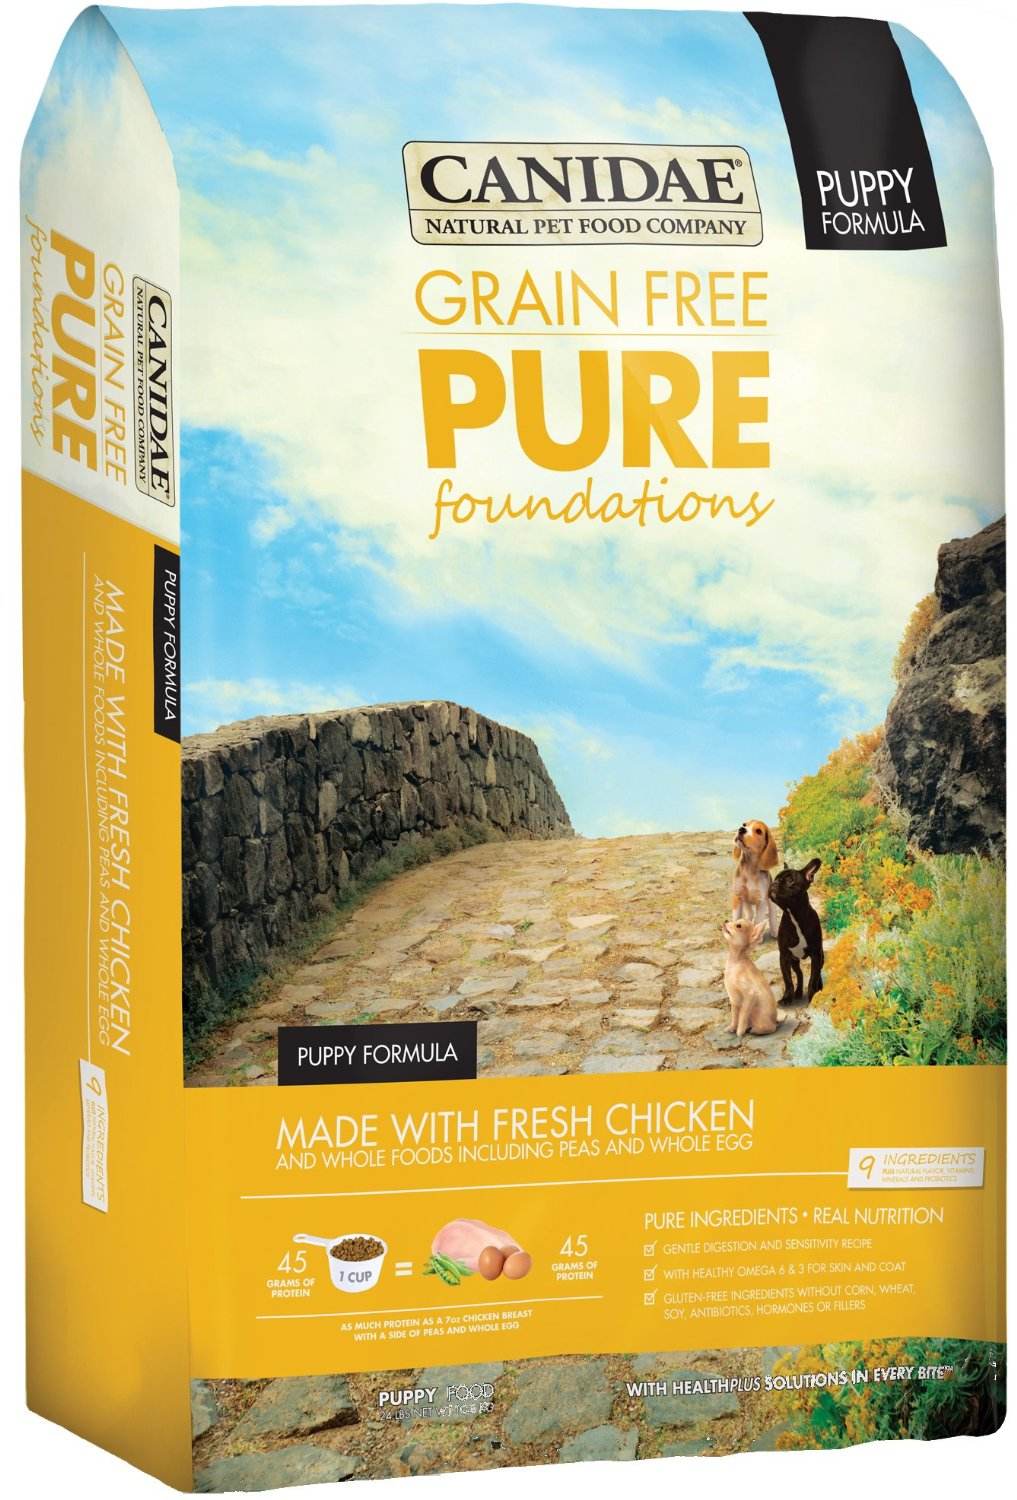 Canidae Gluten-Free Dog Food